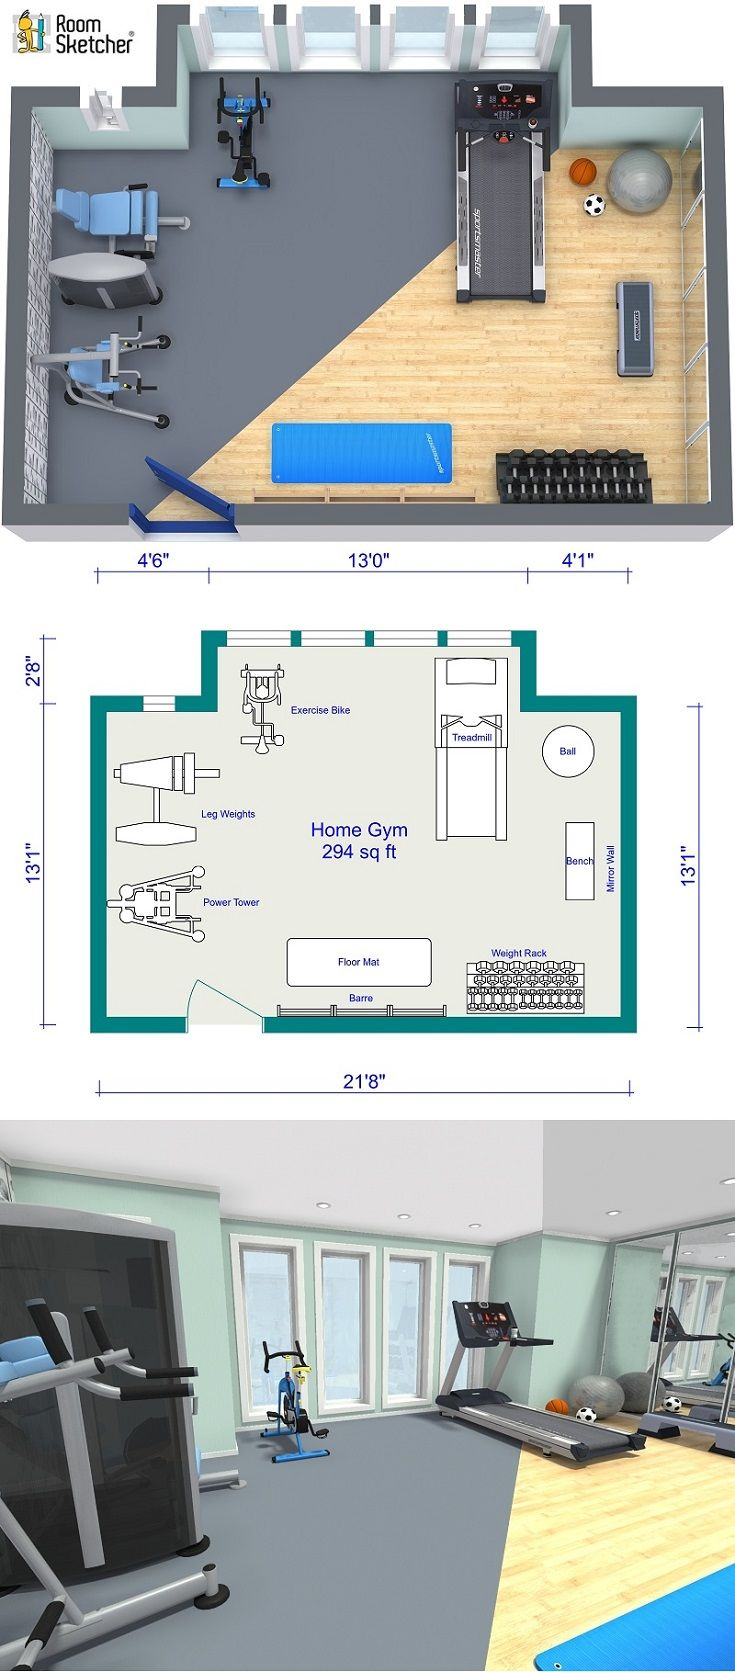 Design A Room With RoomSketcher